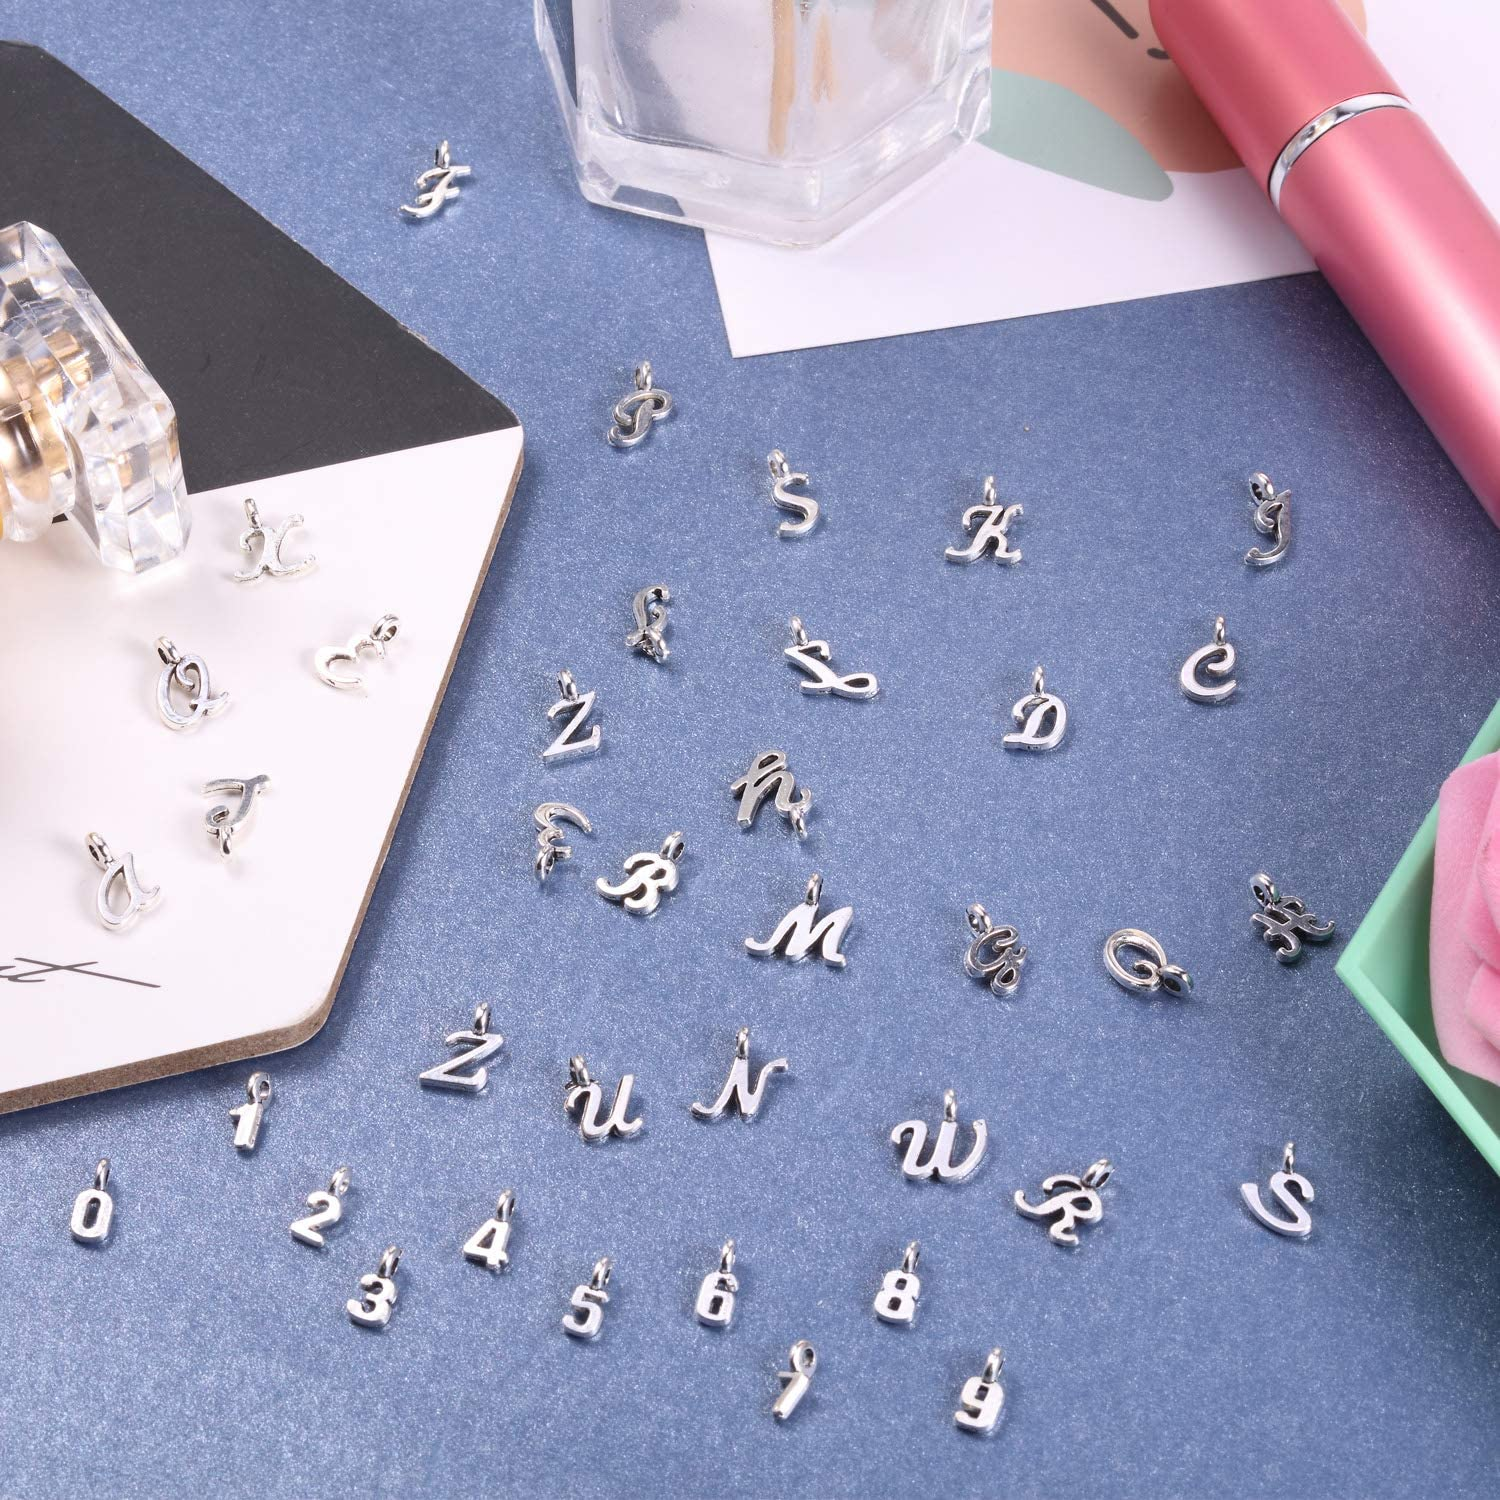 180 Pieces Alphabet Charms Beads Alphabet Letter Mixed Charms Mini Arabic Number Charms Pendant for Necklace Bracelet Jewelry Making Accessory